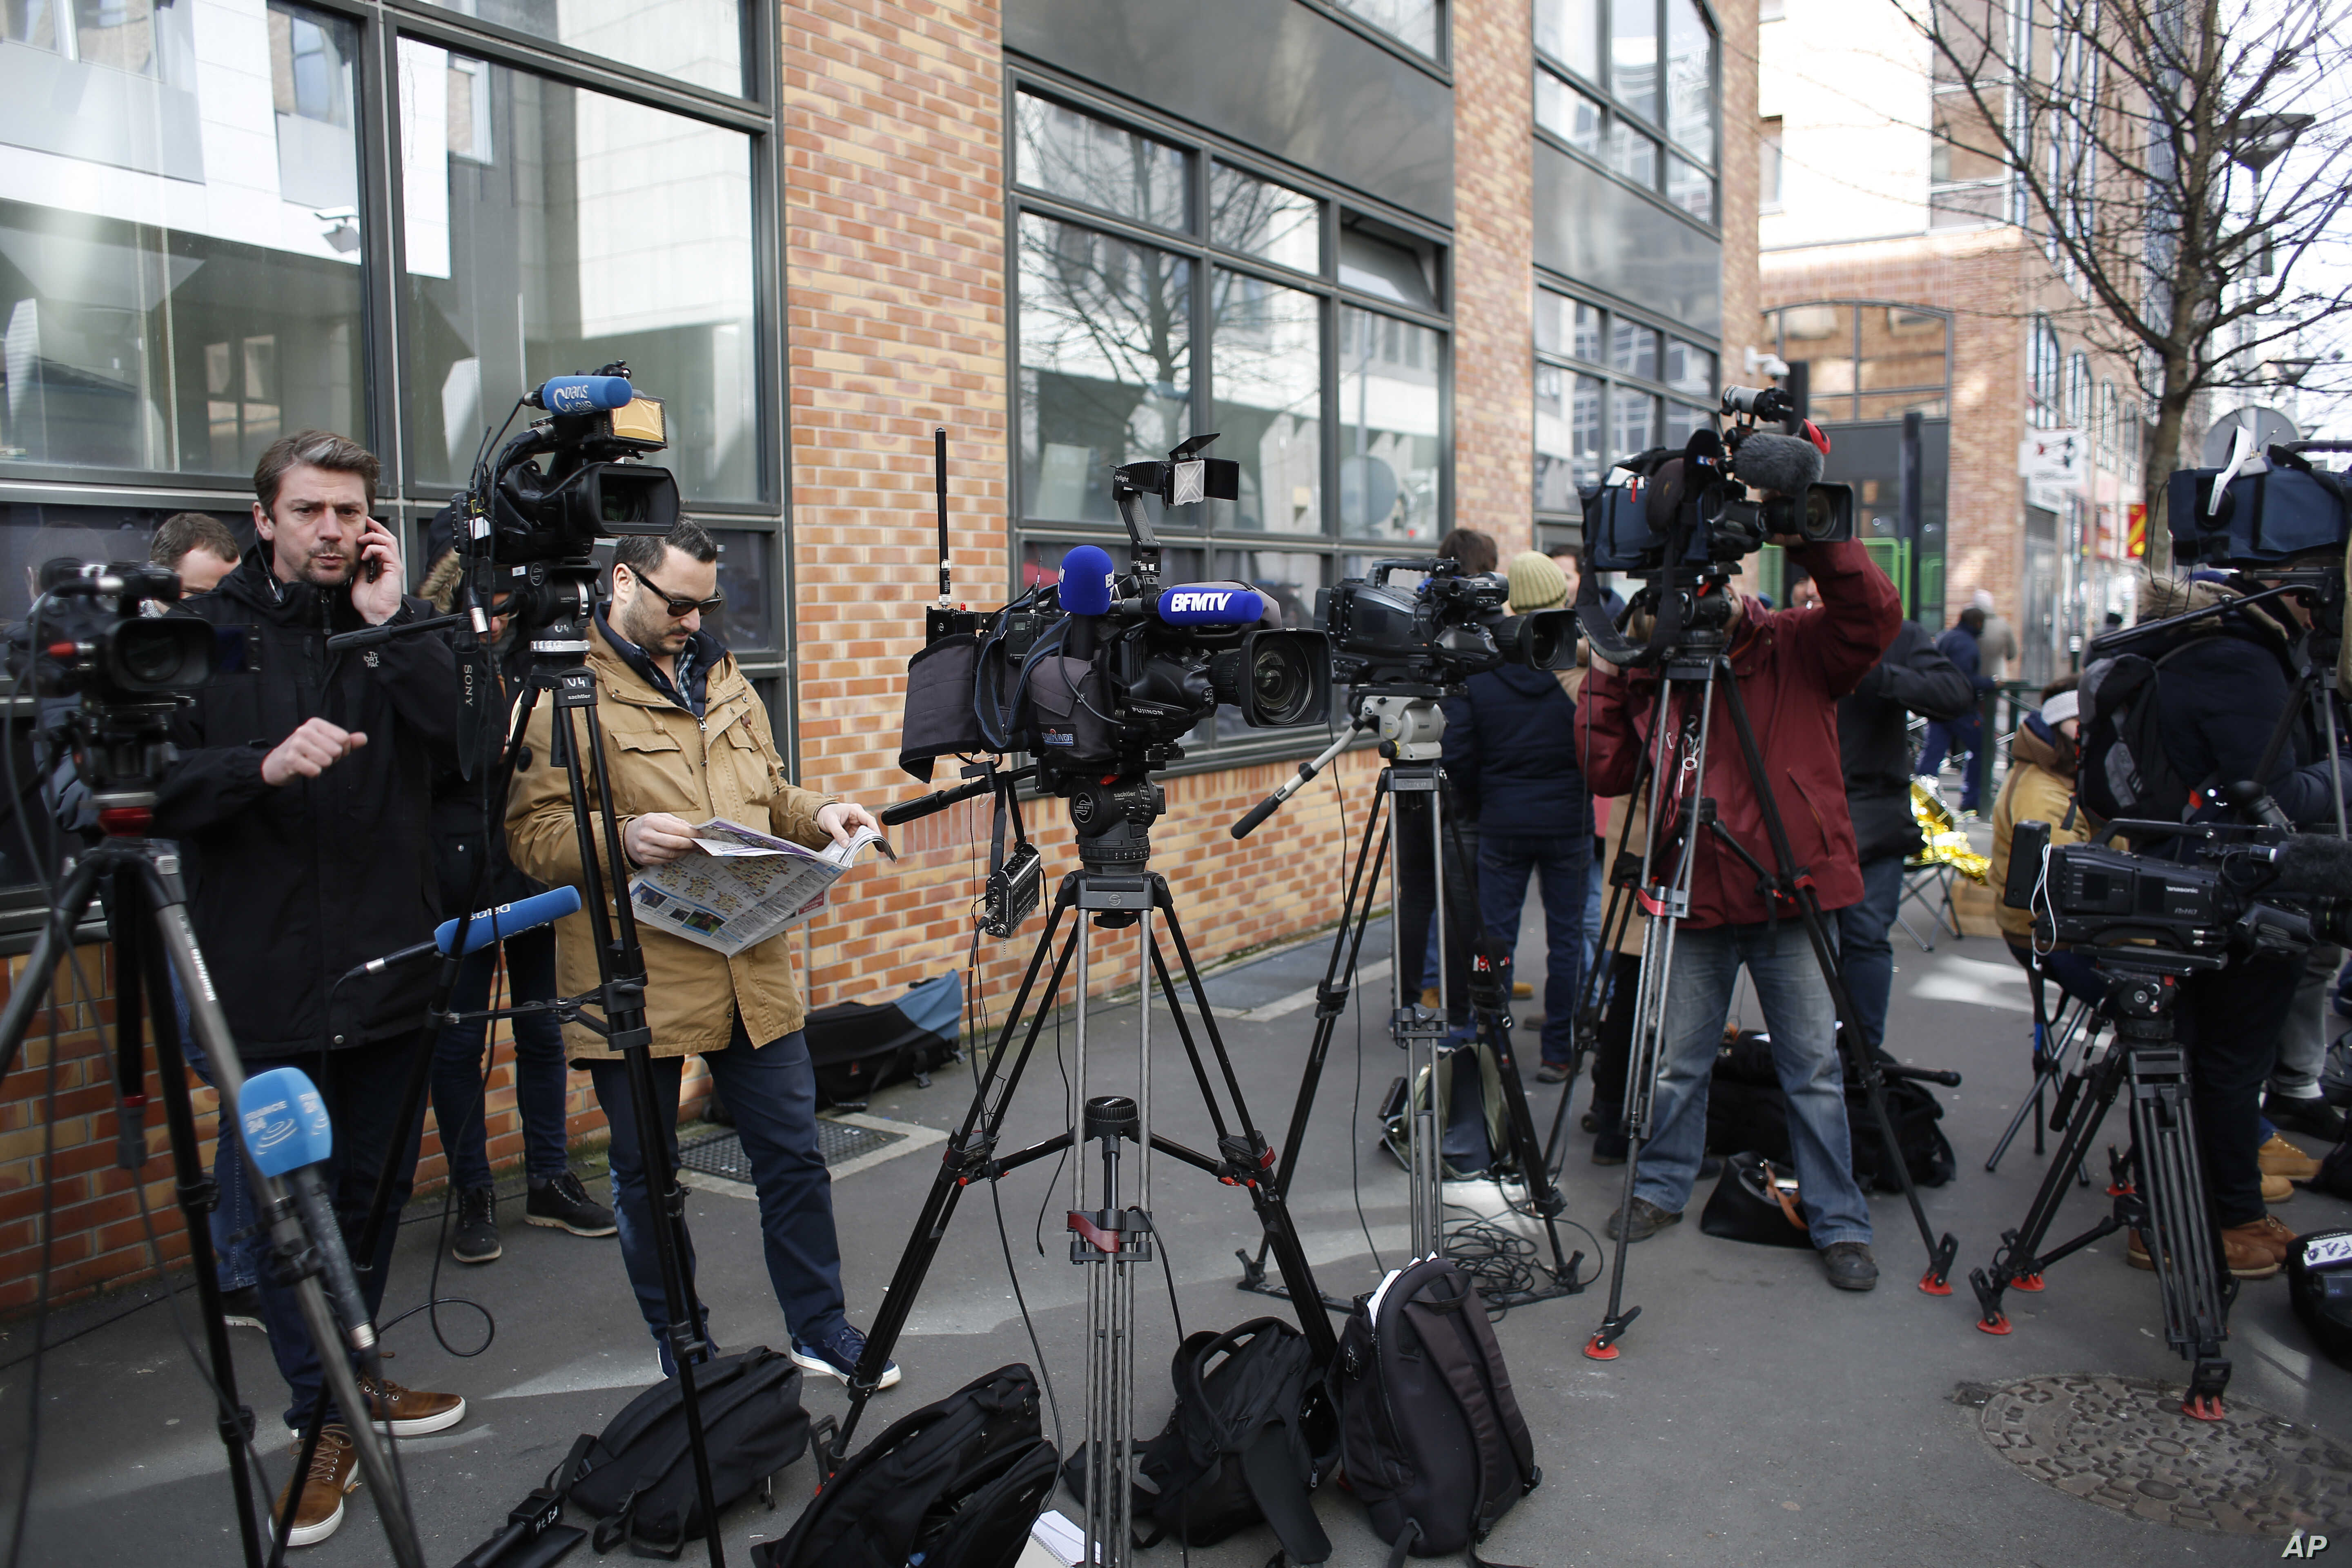 Reporters gather outside the police station where former French President Nicolas Sarkozy was being held in Nanterre, outside Paris, March 21, 2018.